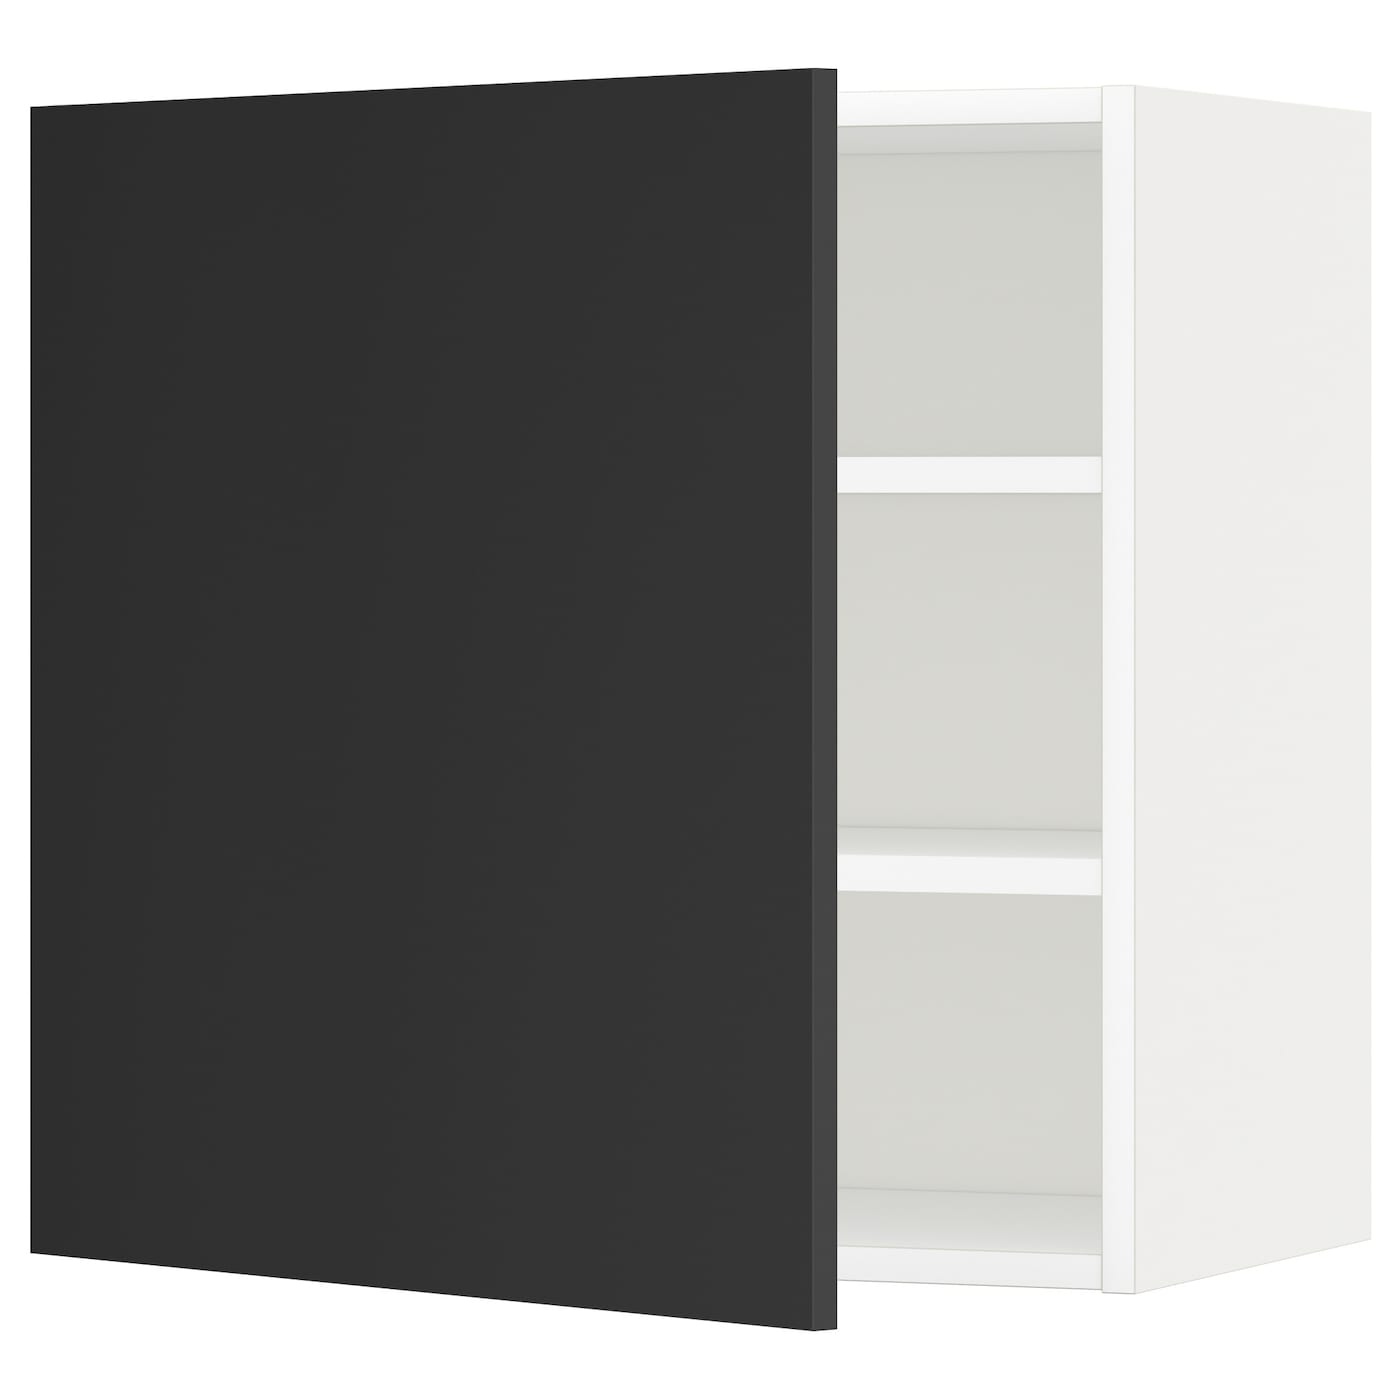 IKEA METOD wall cabinet with shelves You can choose to mount the door on the right or left side.